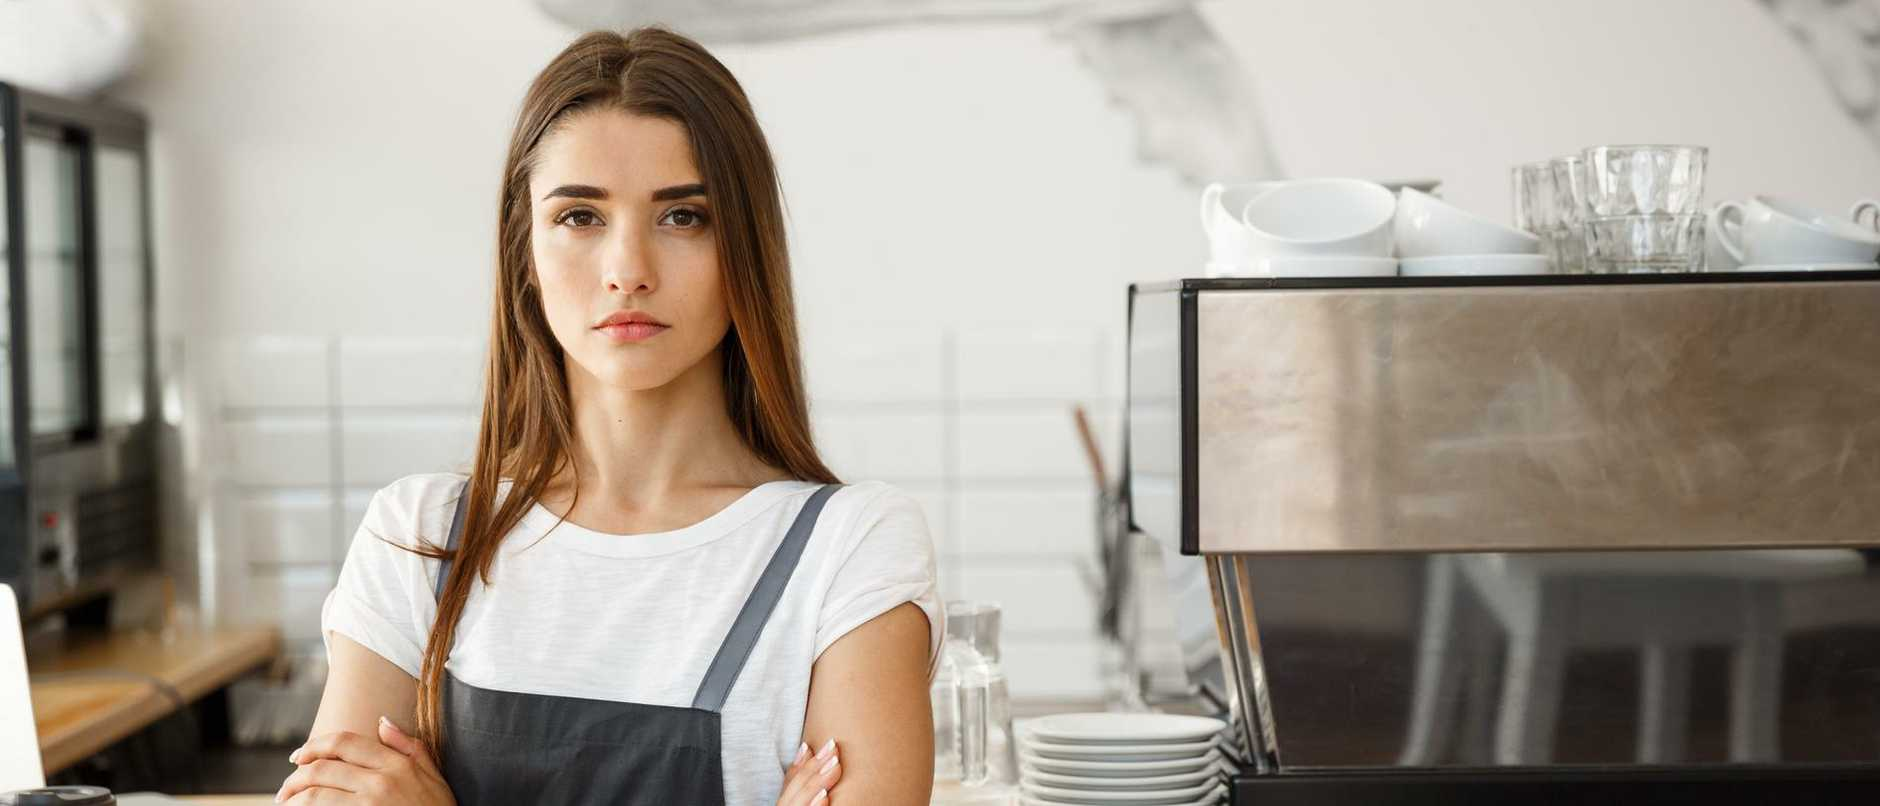 A staggering number of jobs have been lost in the food and accommodation industry.